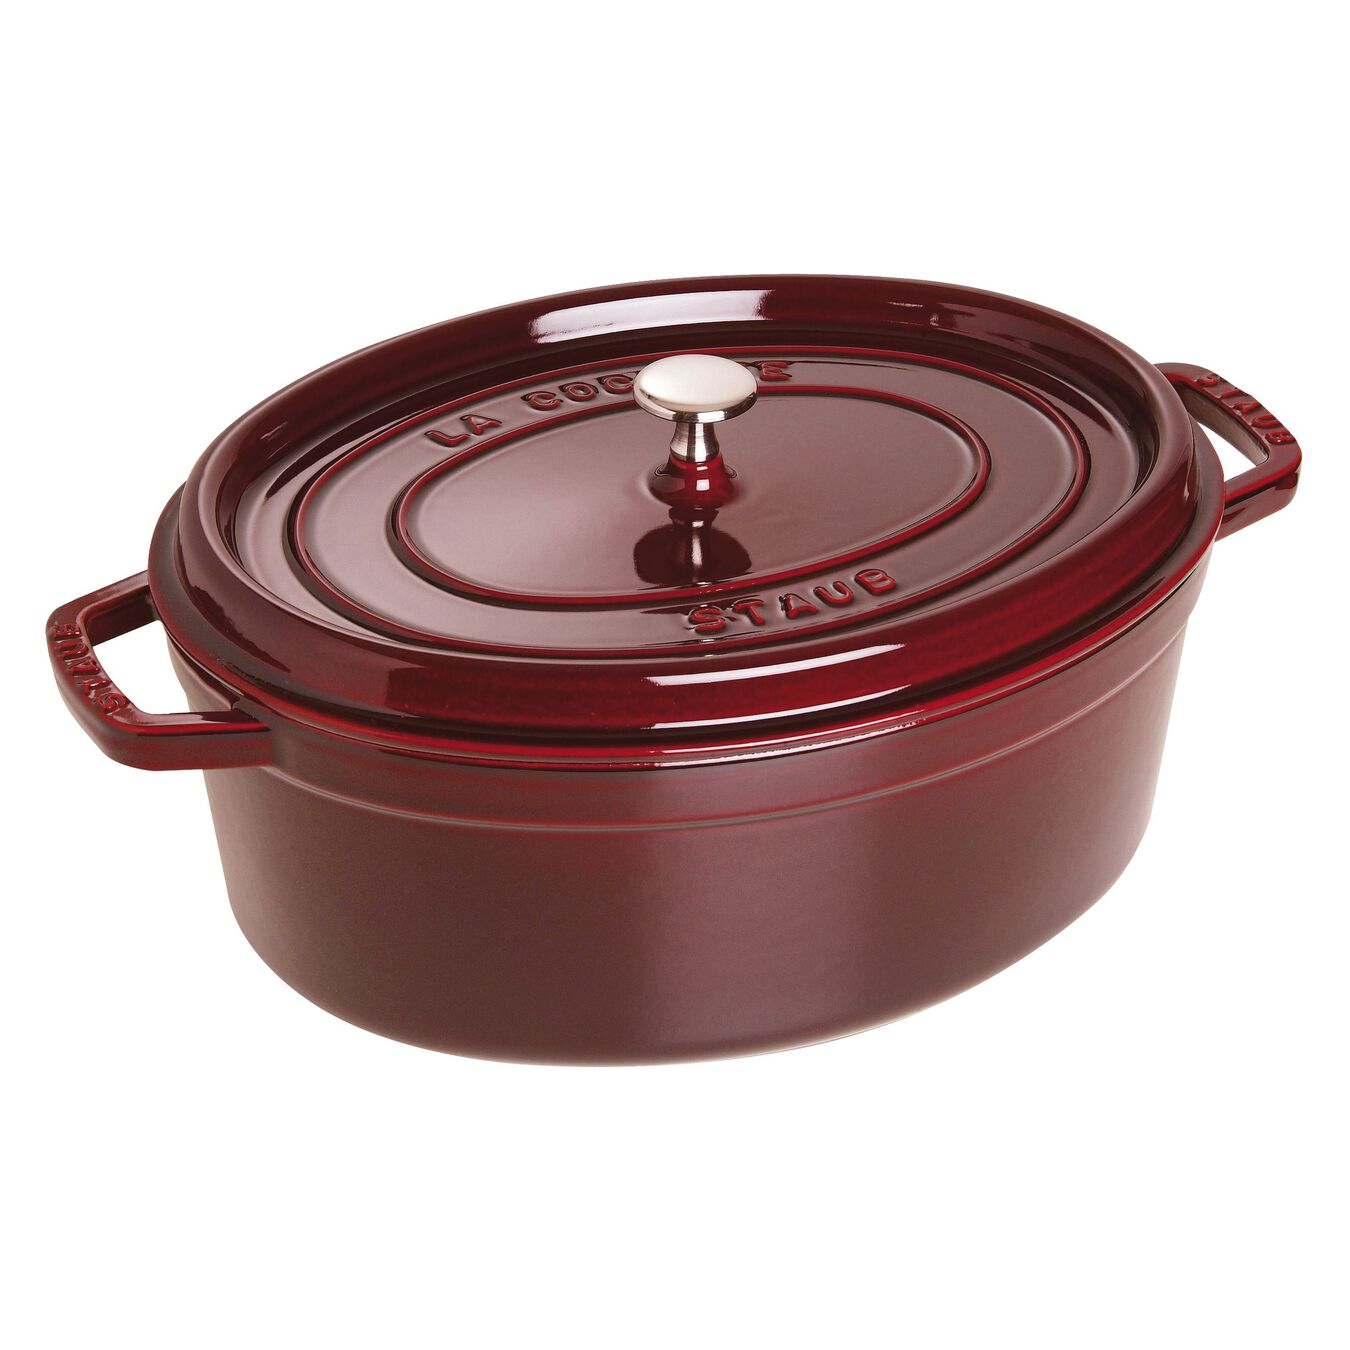 Cocotte 31 cm, oval, Grenadine-Rot, Gusseisen,,large 1